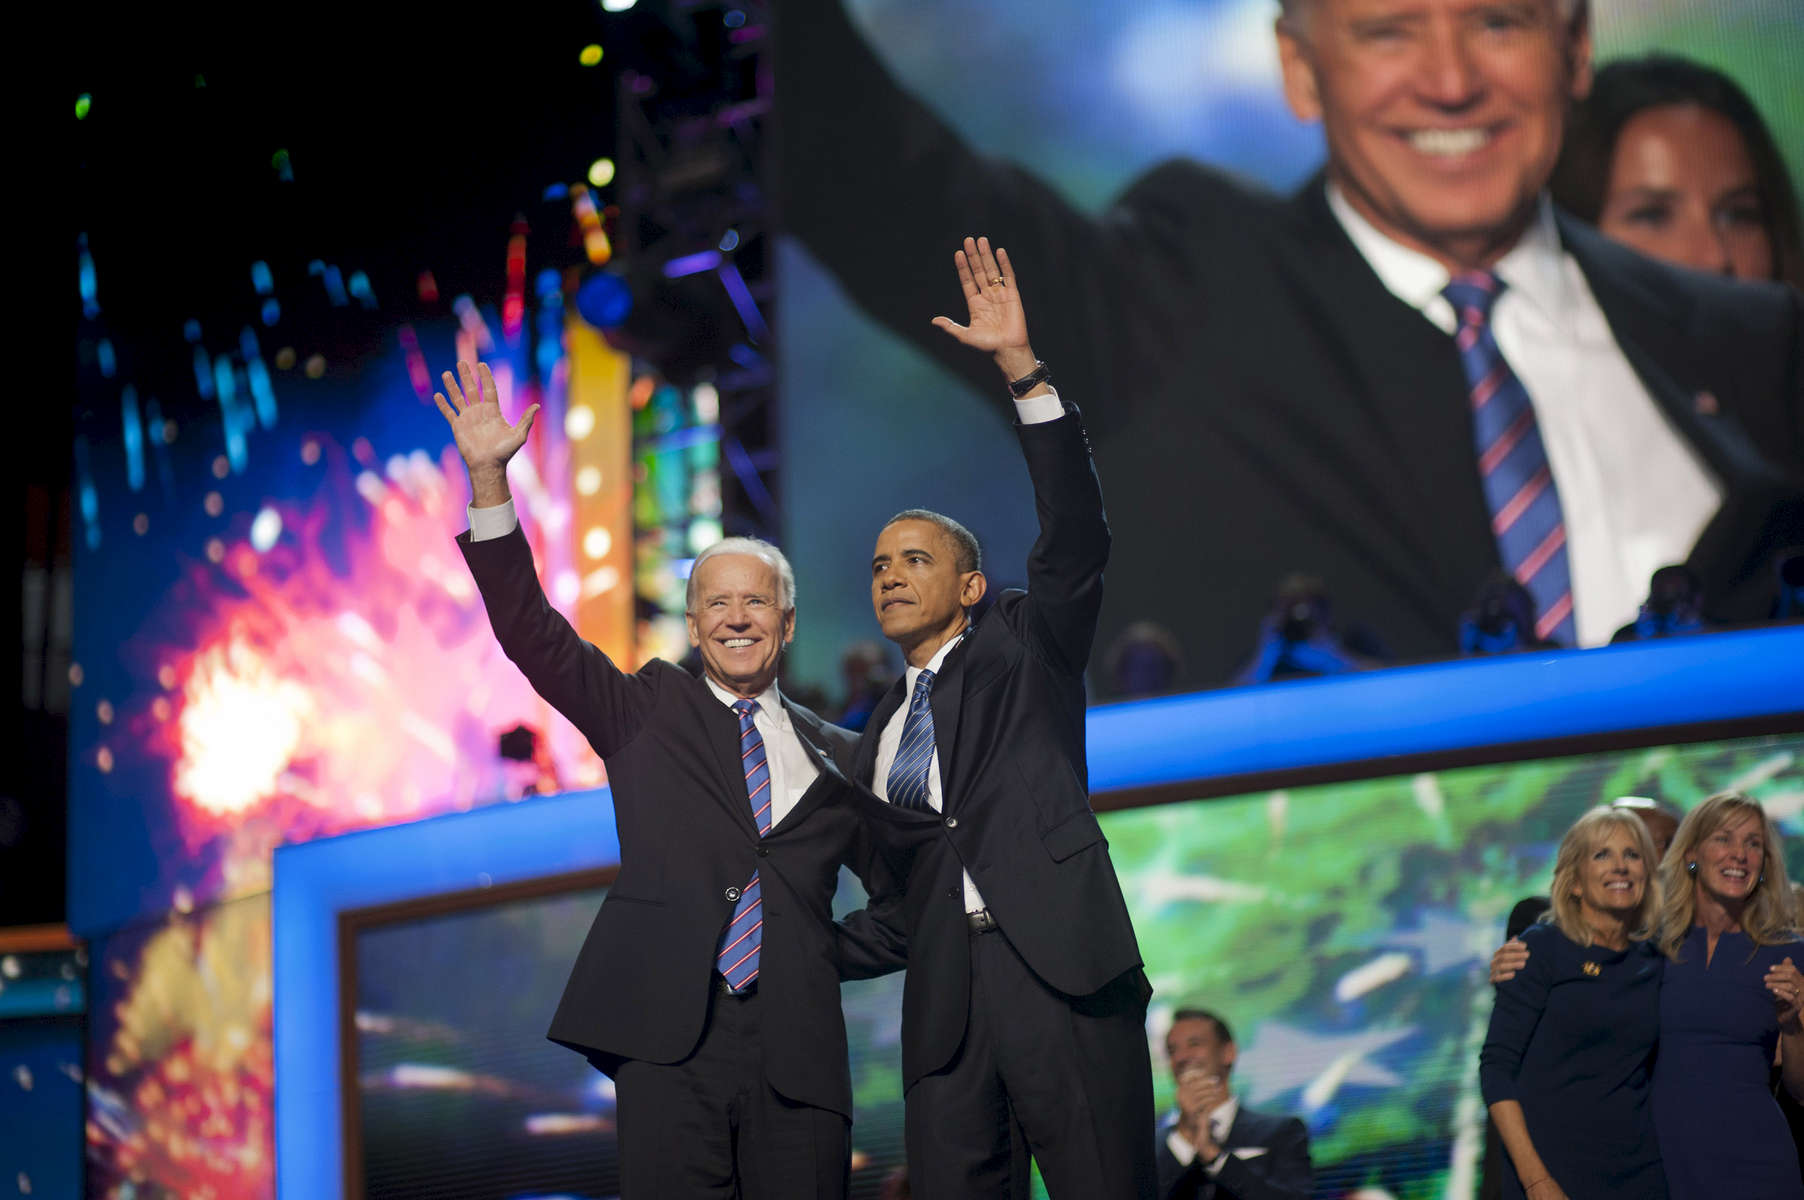 September 6, 2012 - CHARLOTTE, NC: President Barack Obama and Vice President Joe Biden wave to the crowd at the 2012 Democratic National Convention in Charlotte. (Scout Tufankjian for Obama for America/Polaris)